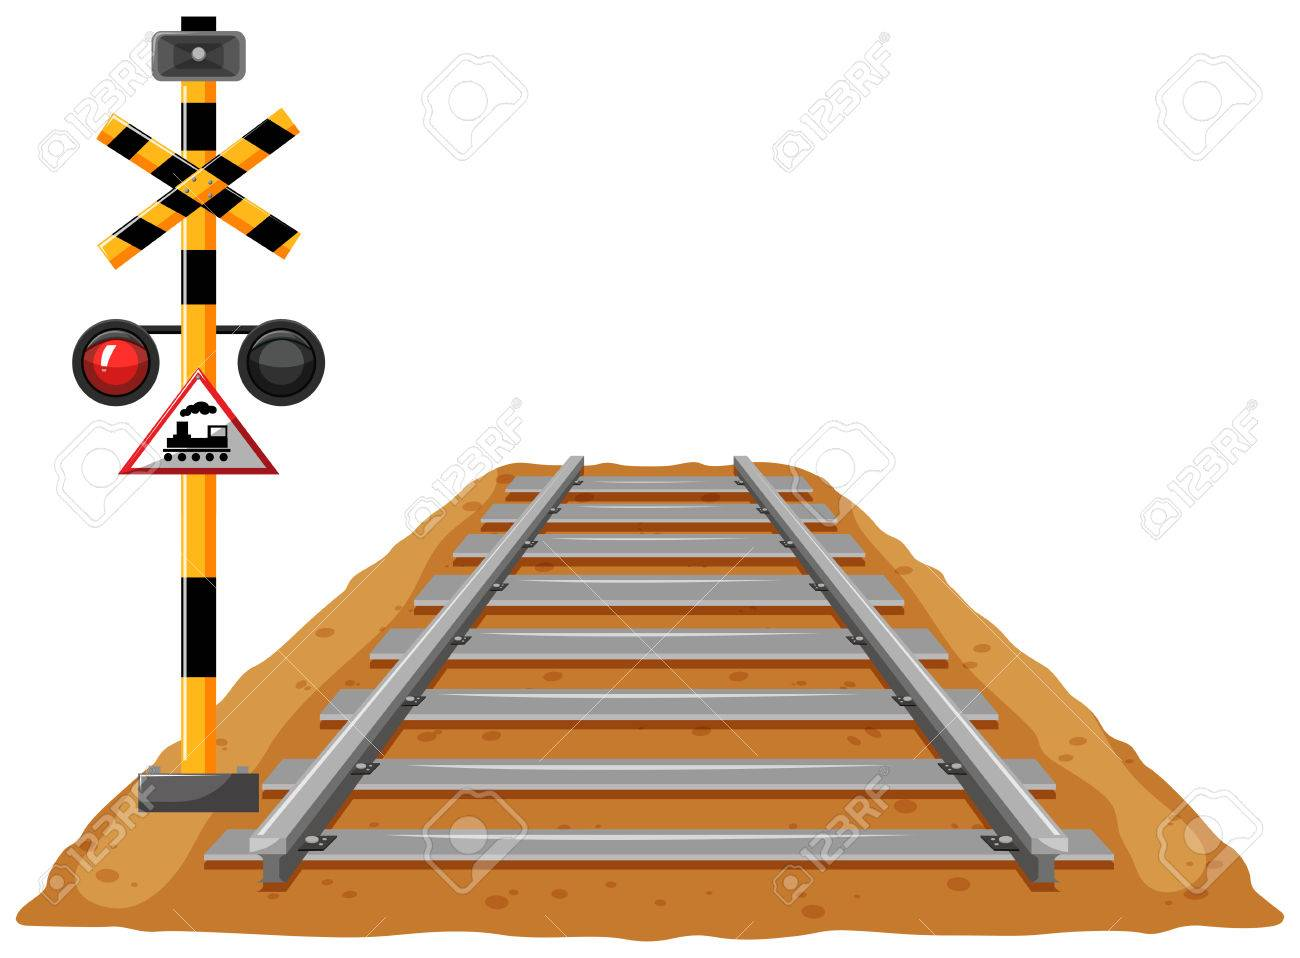 hight resolution of train track and light signal pole illustration stock vector 77014610